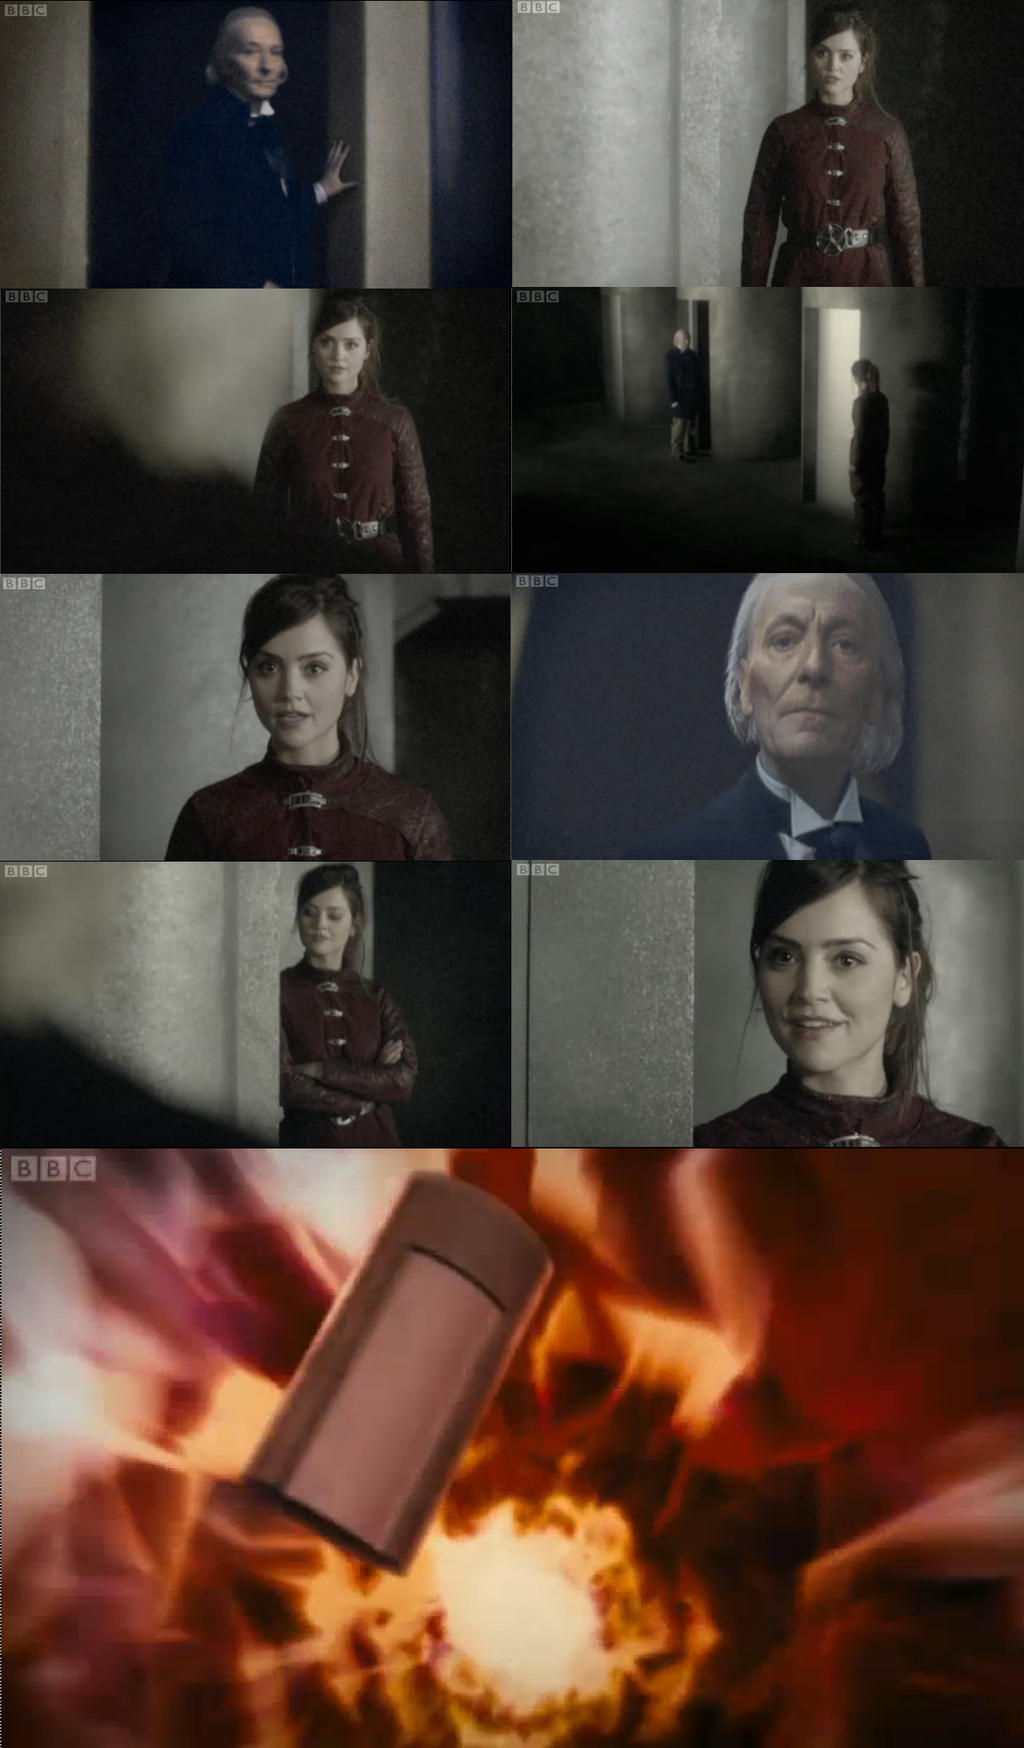 Doctor Who - Stealing the Tardis by DoctorWhoOne